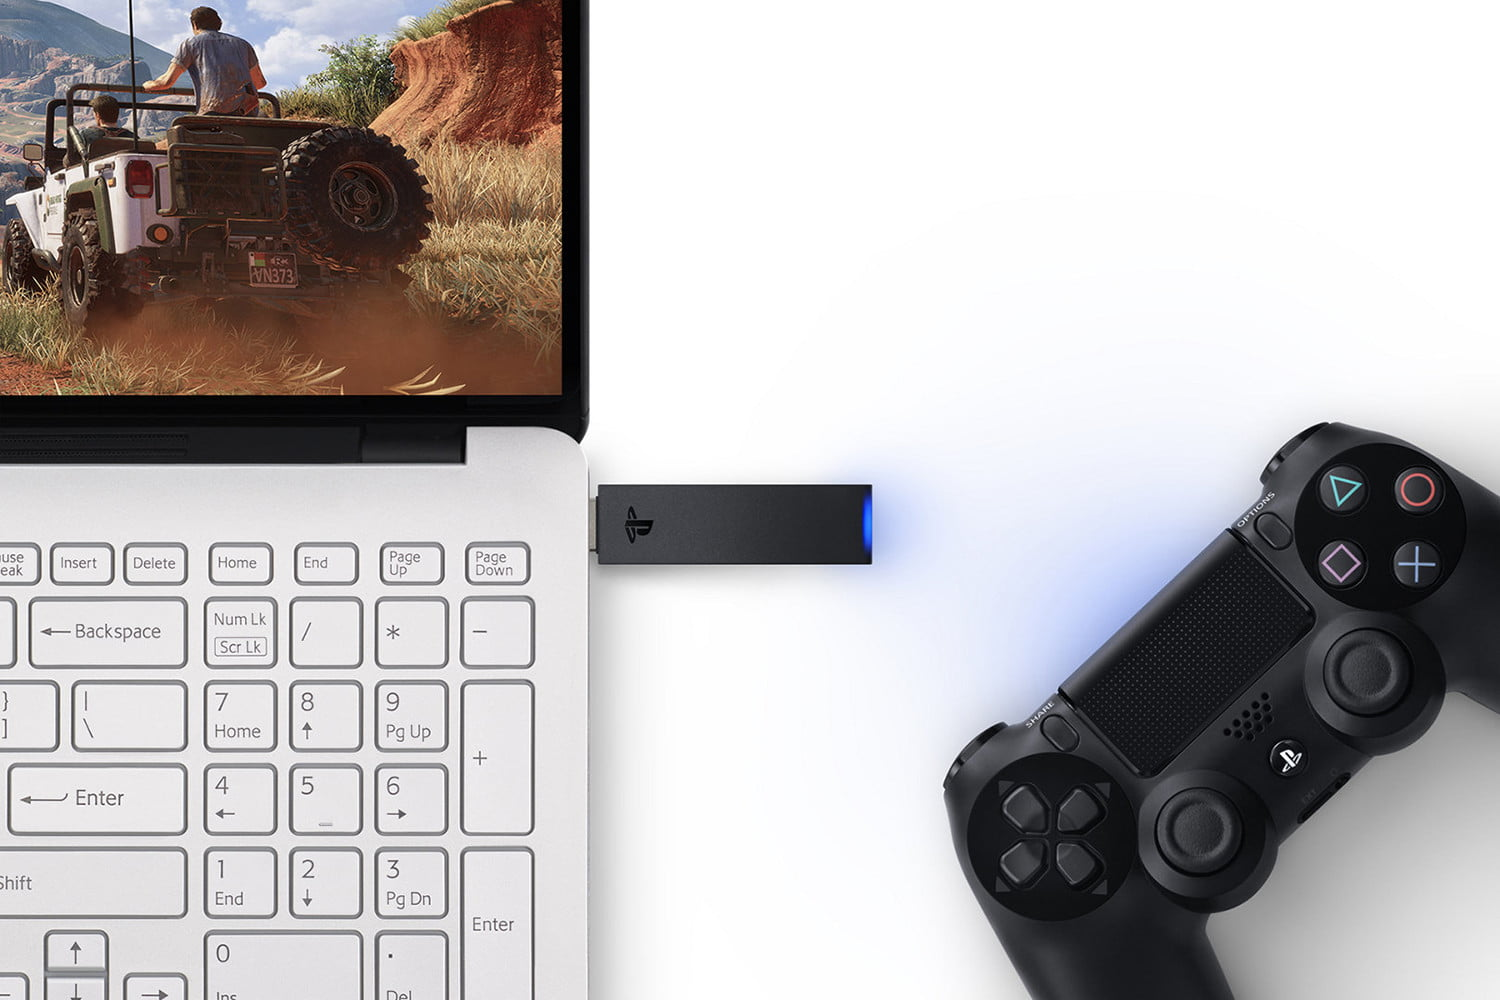 How to connect Dualshock